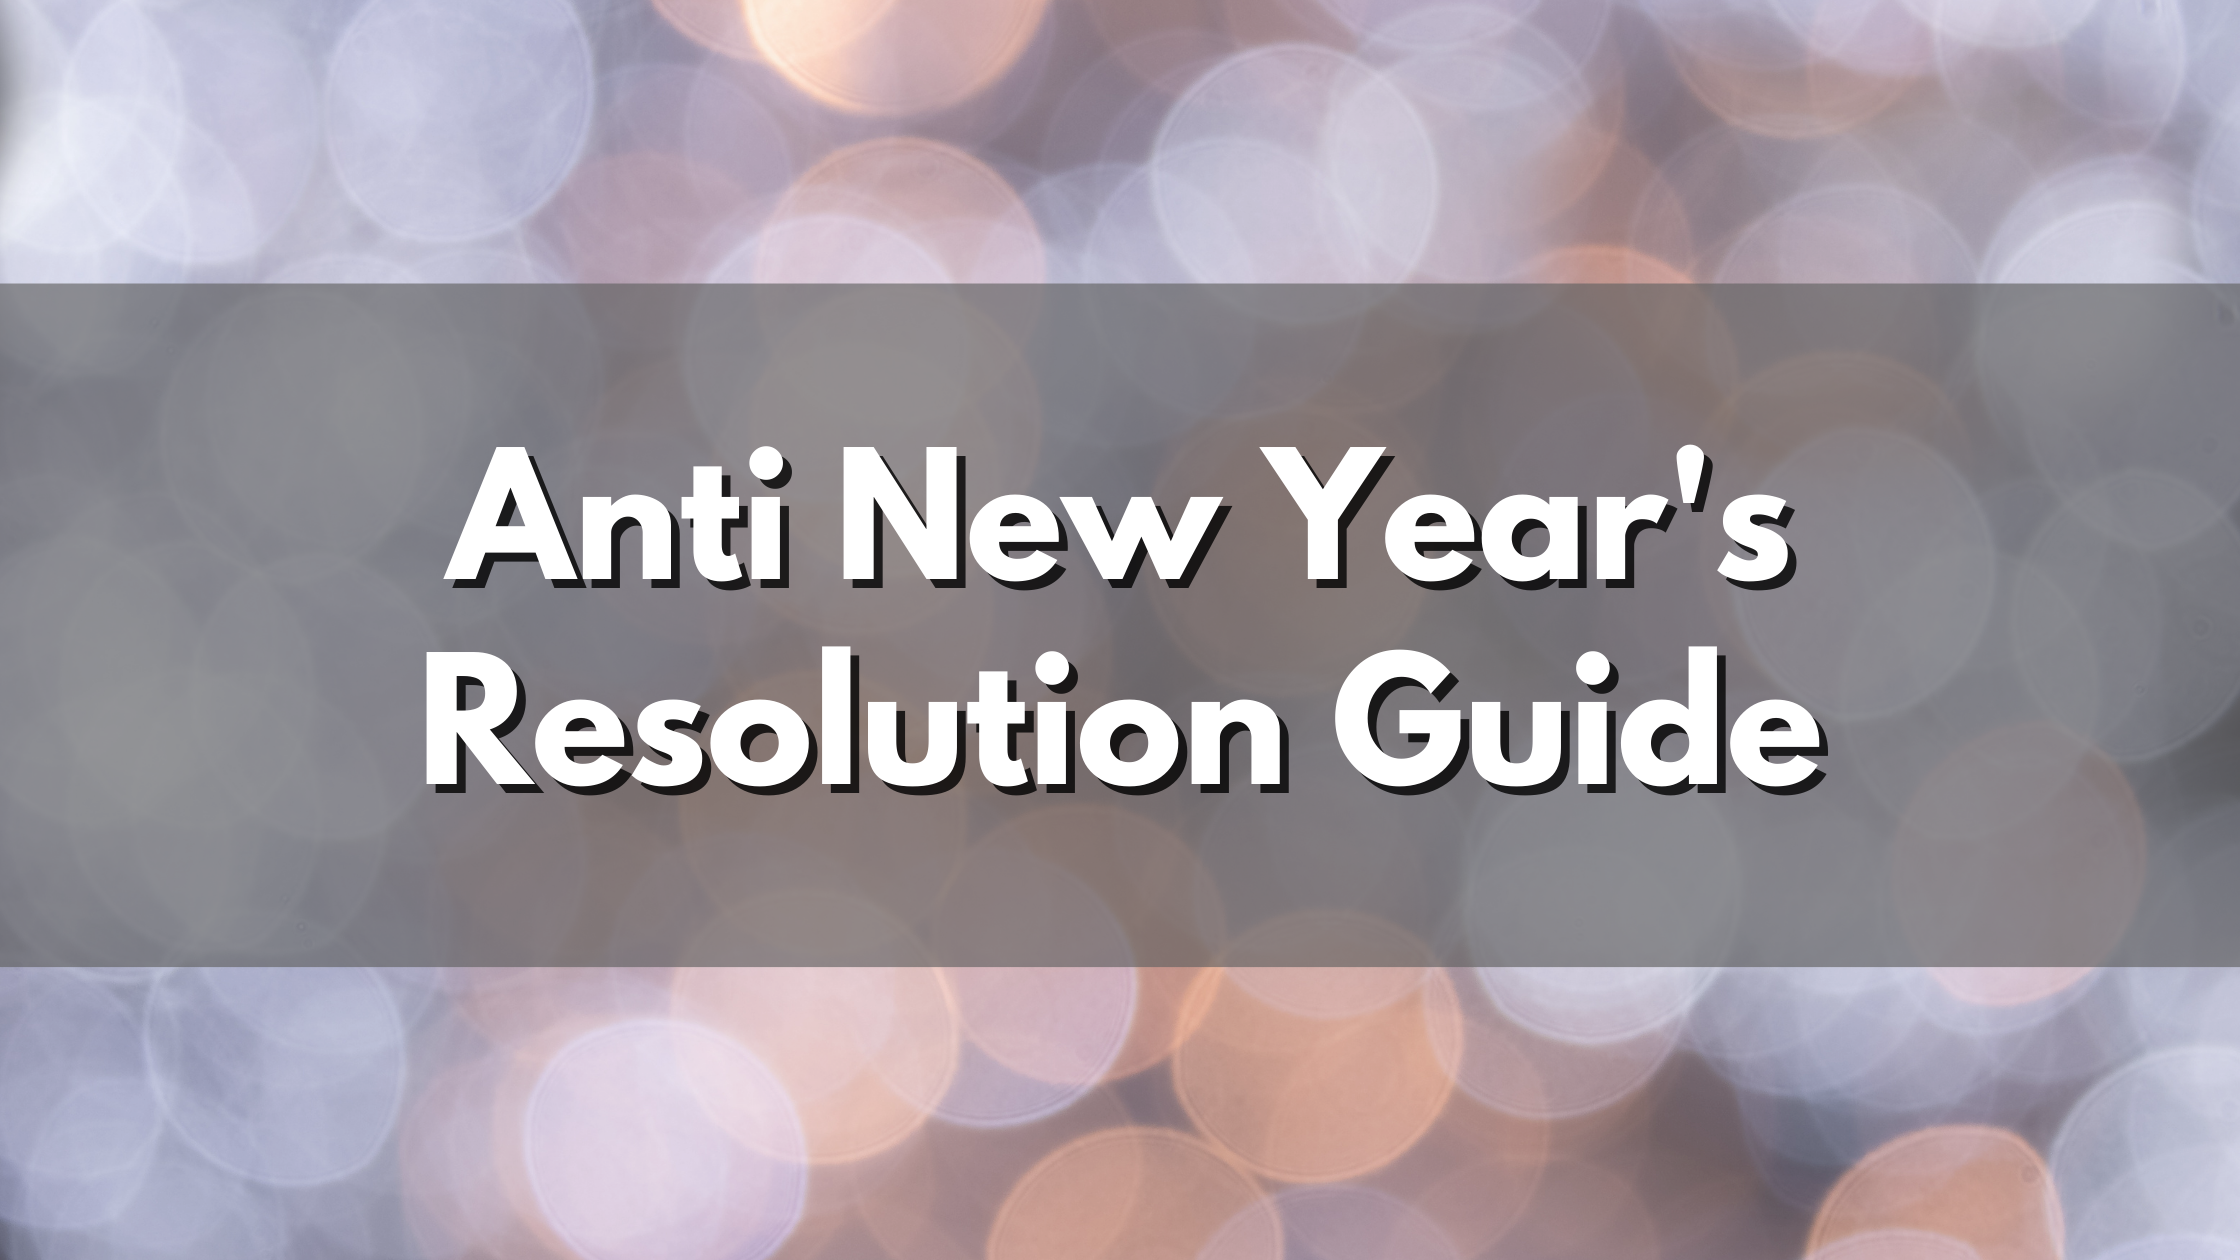 The Anti New Year's Resolutions Guide